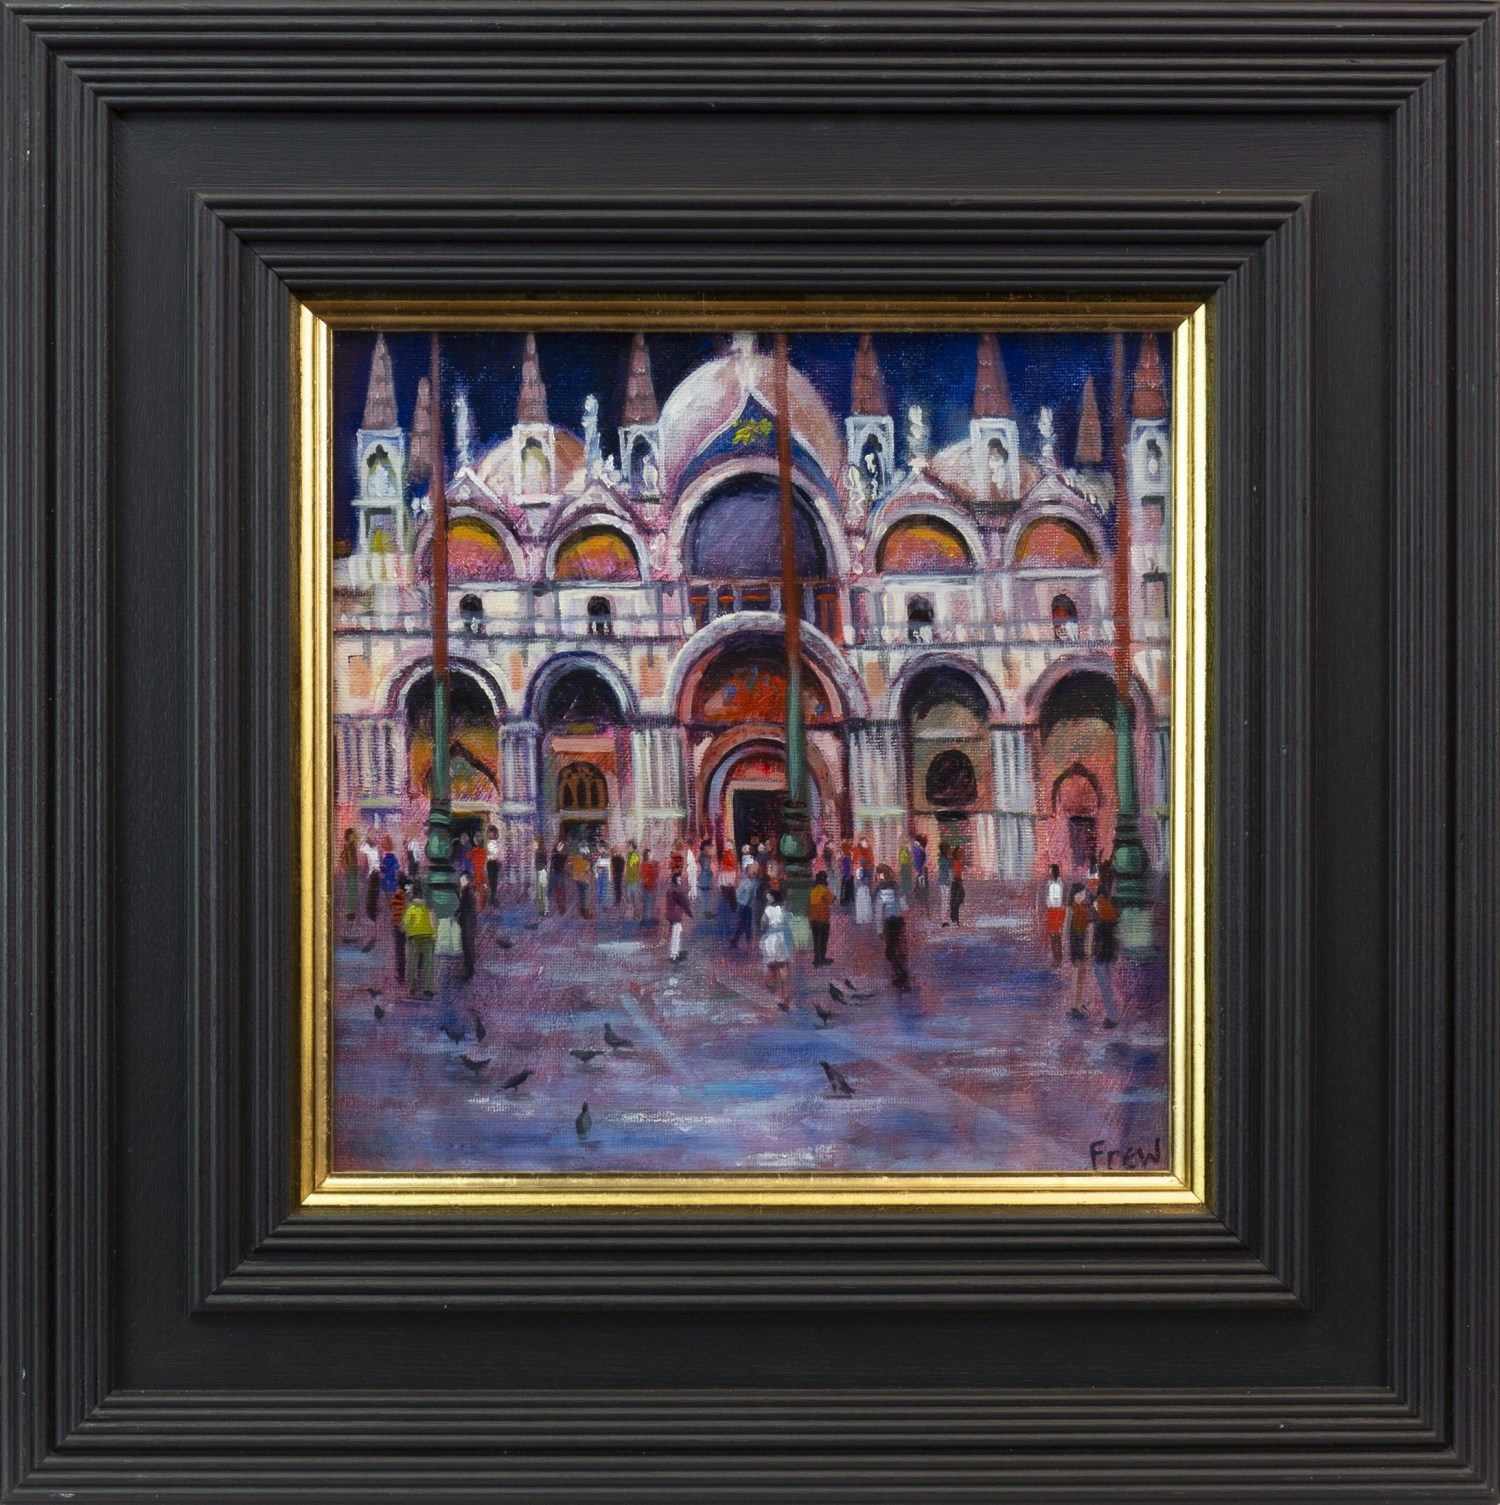 Lot 112 - PIGEONS IN VENICE, AN OIL ON CANVAS BY DOREEN E DAVIS